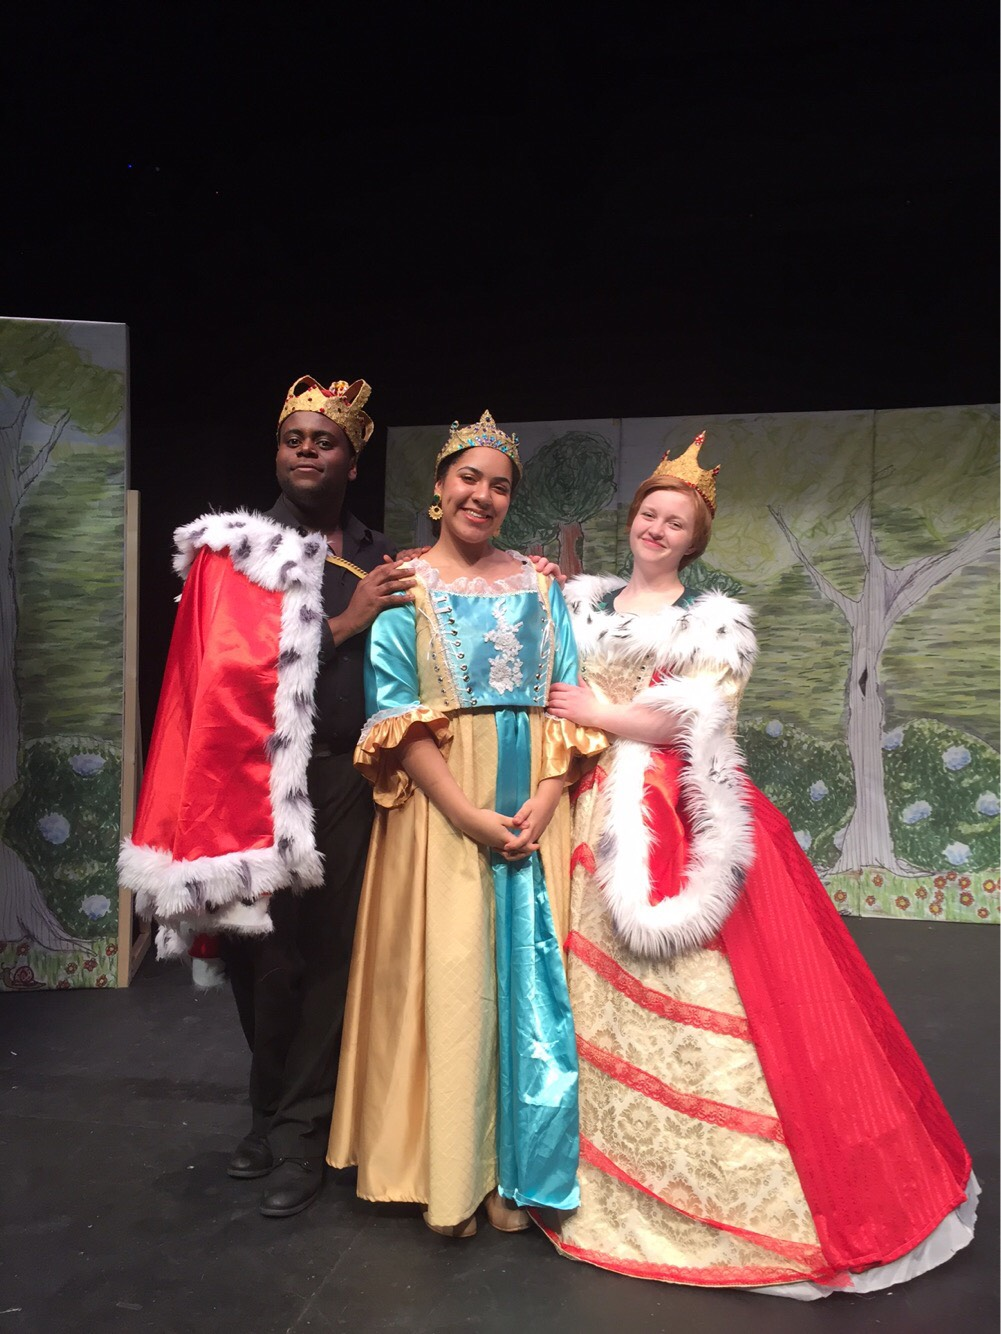 Princess Pricilla and her parents